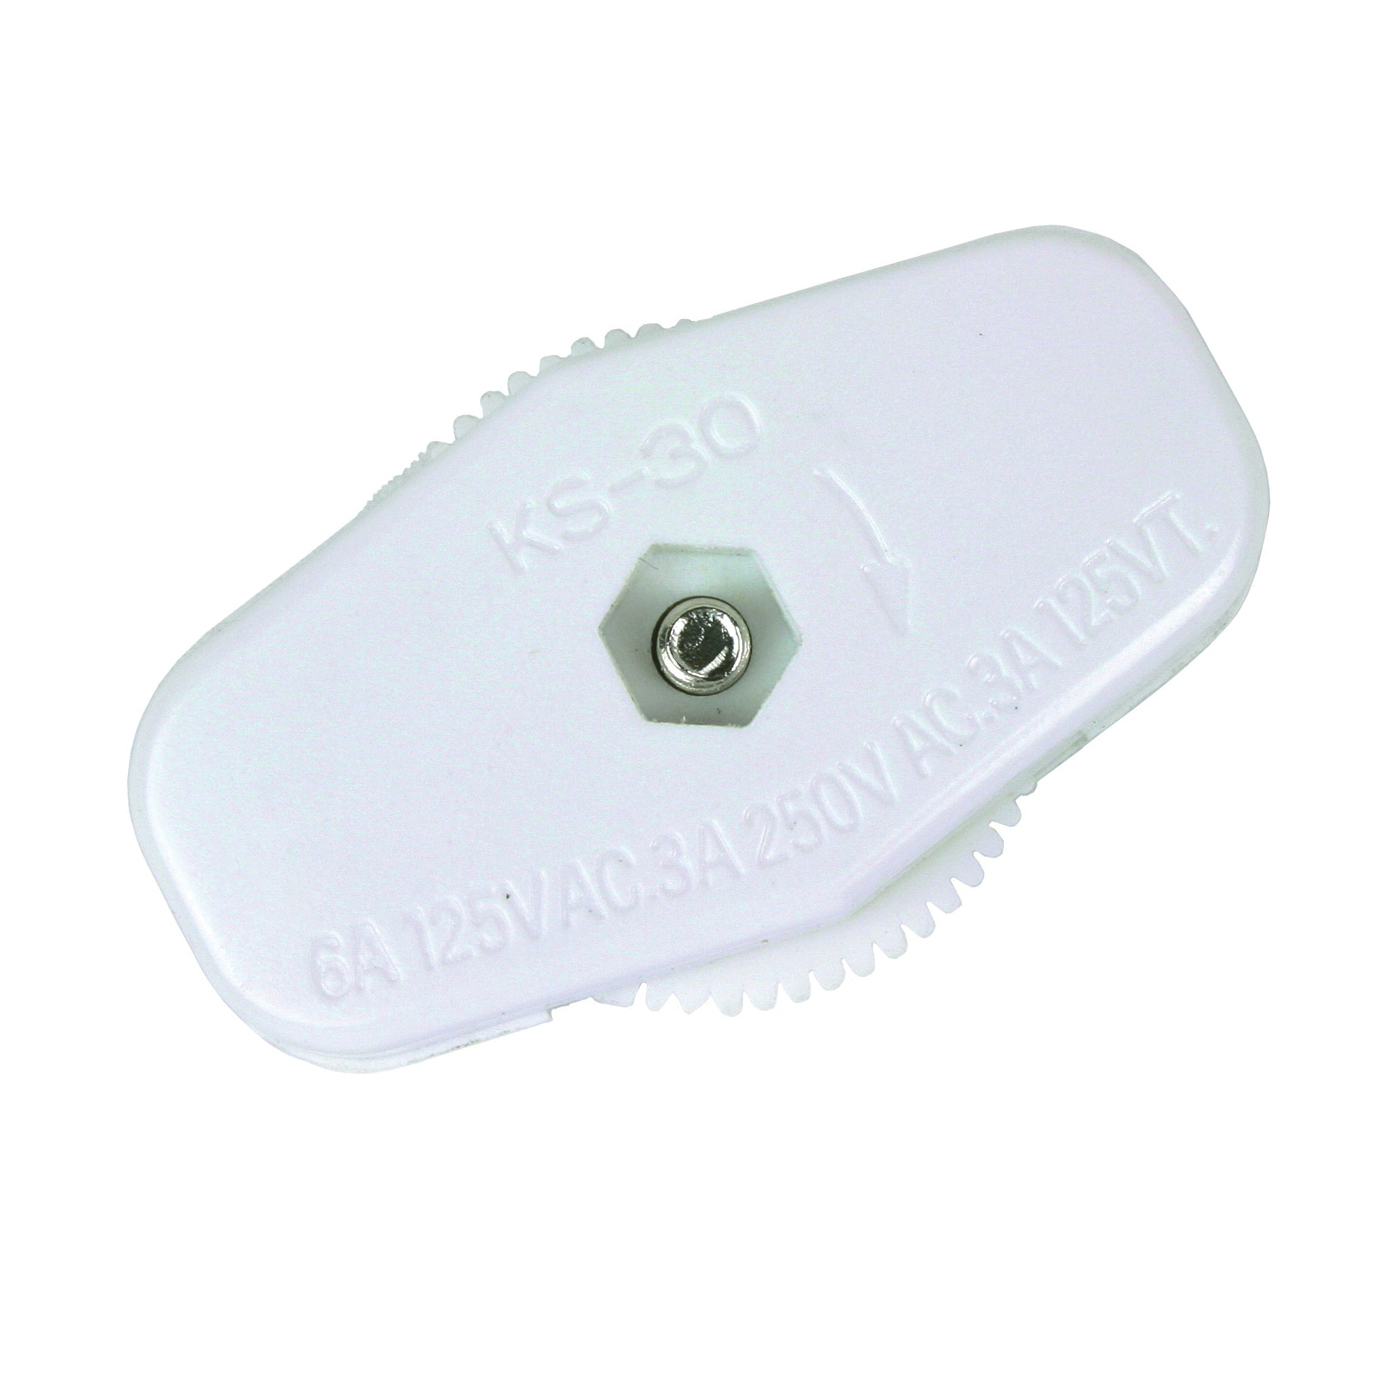 Picture of Jandorf 88920 Switch, 3/6 A, 125/250 V, 2-Teeth Terminals Terminal, White